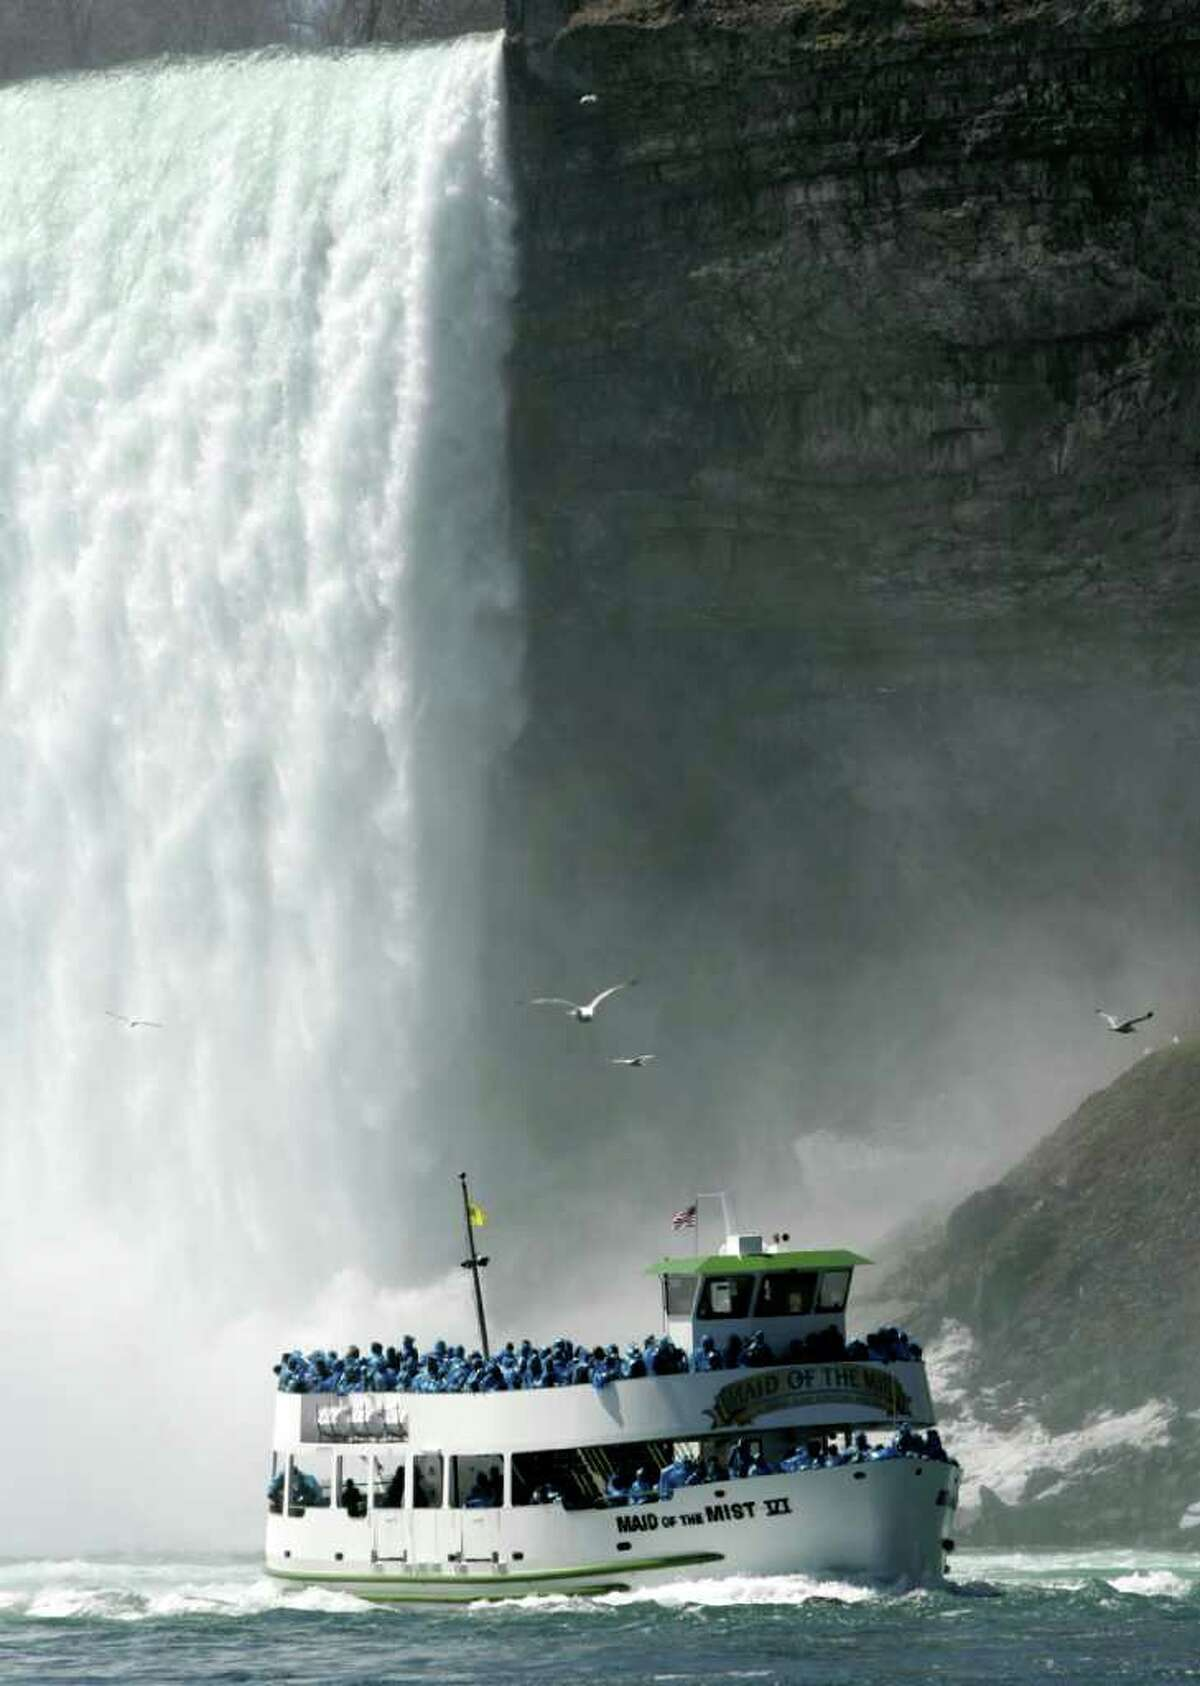 FILE - In this April 21, 2005 file photo, a Maid of the Mist ship returns from the base of the Horseshoe Falls, as seen from a ship leaving Niagara Falls, N.Y. Deliberations in Canada over the future of the Maid of the Mist sightseeing boats at Niagara Falls are being closely watched in the United States, where elected and tourism officials want to avoid disruptions to a primary tourist draw. (AP Photo/David Duprey, File)